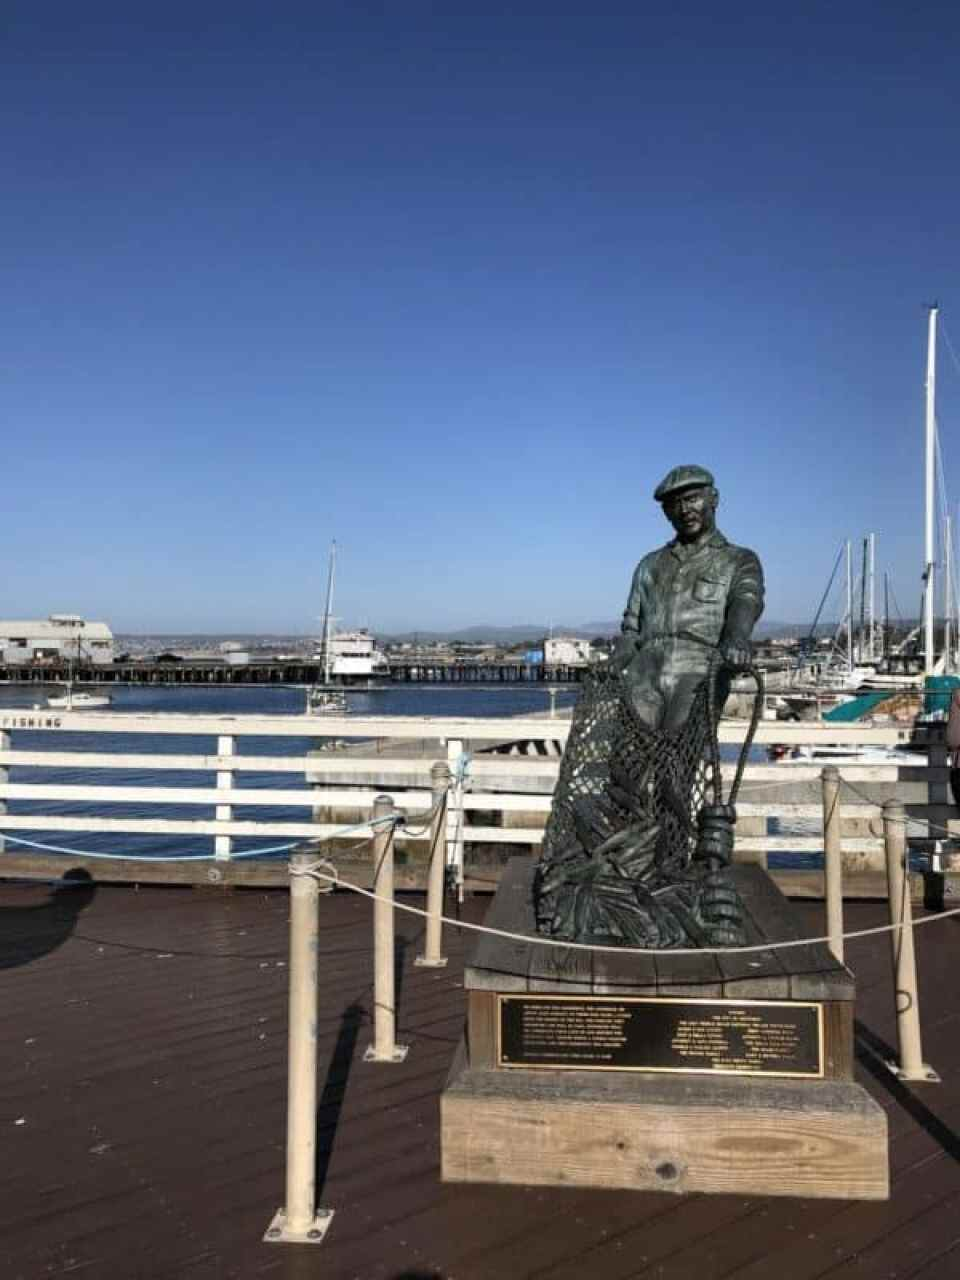 The-fisherman-statue-by-Jesse-Corsaut-Old-Fishermans-Grotto-Wharf-Monterey-CA